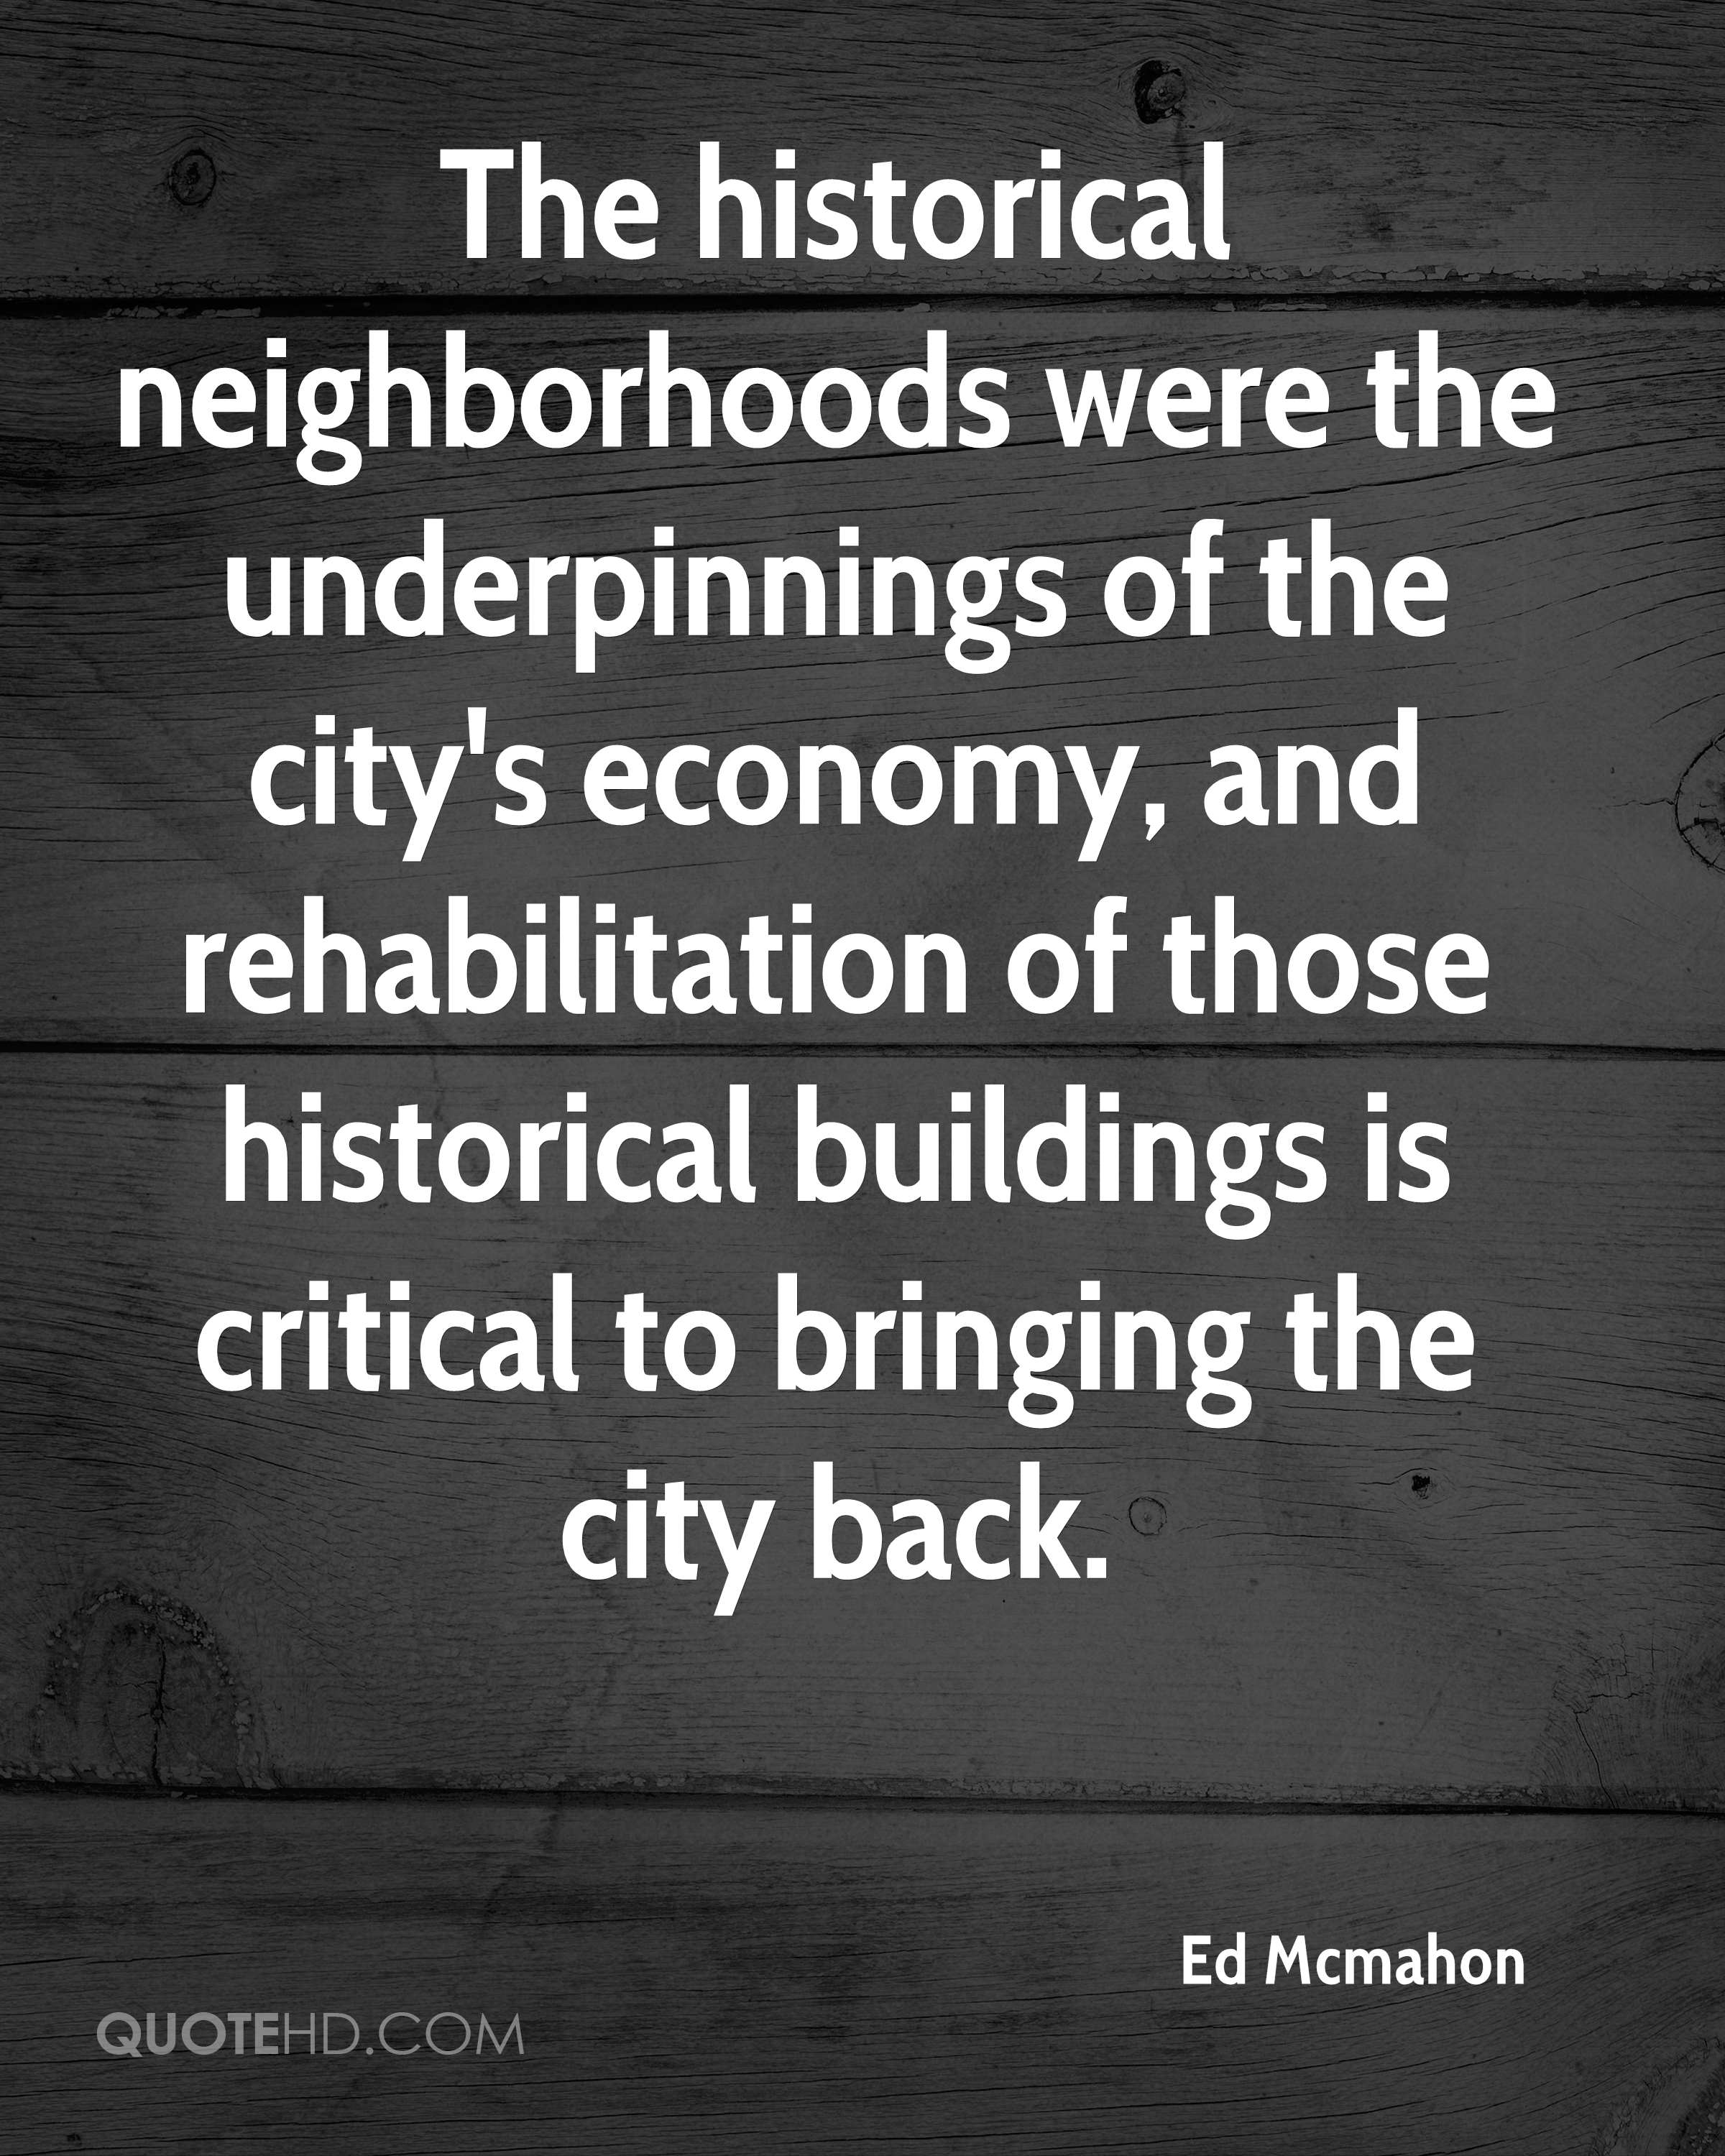 The historical neighborhoods were the underpinnings of the city's economy, and rehabilitation of those historical buildings is critical to bringing the city back.